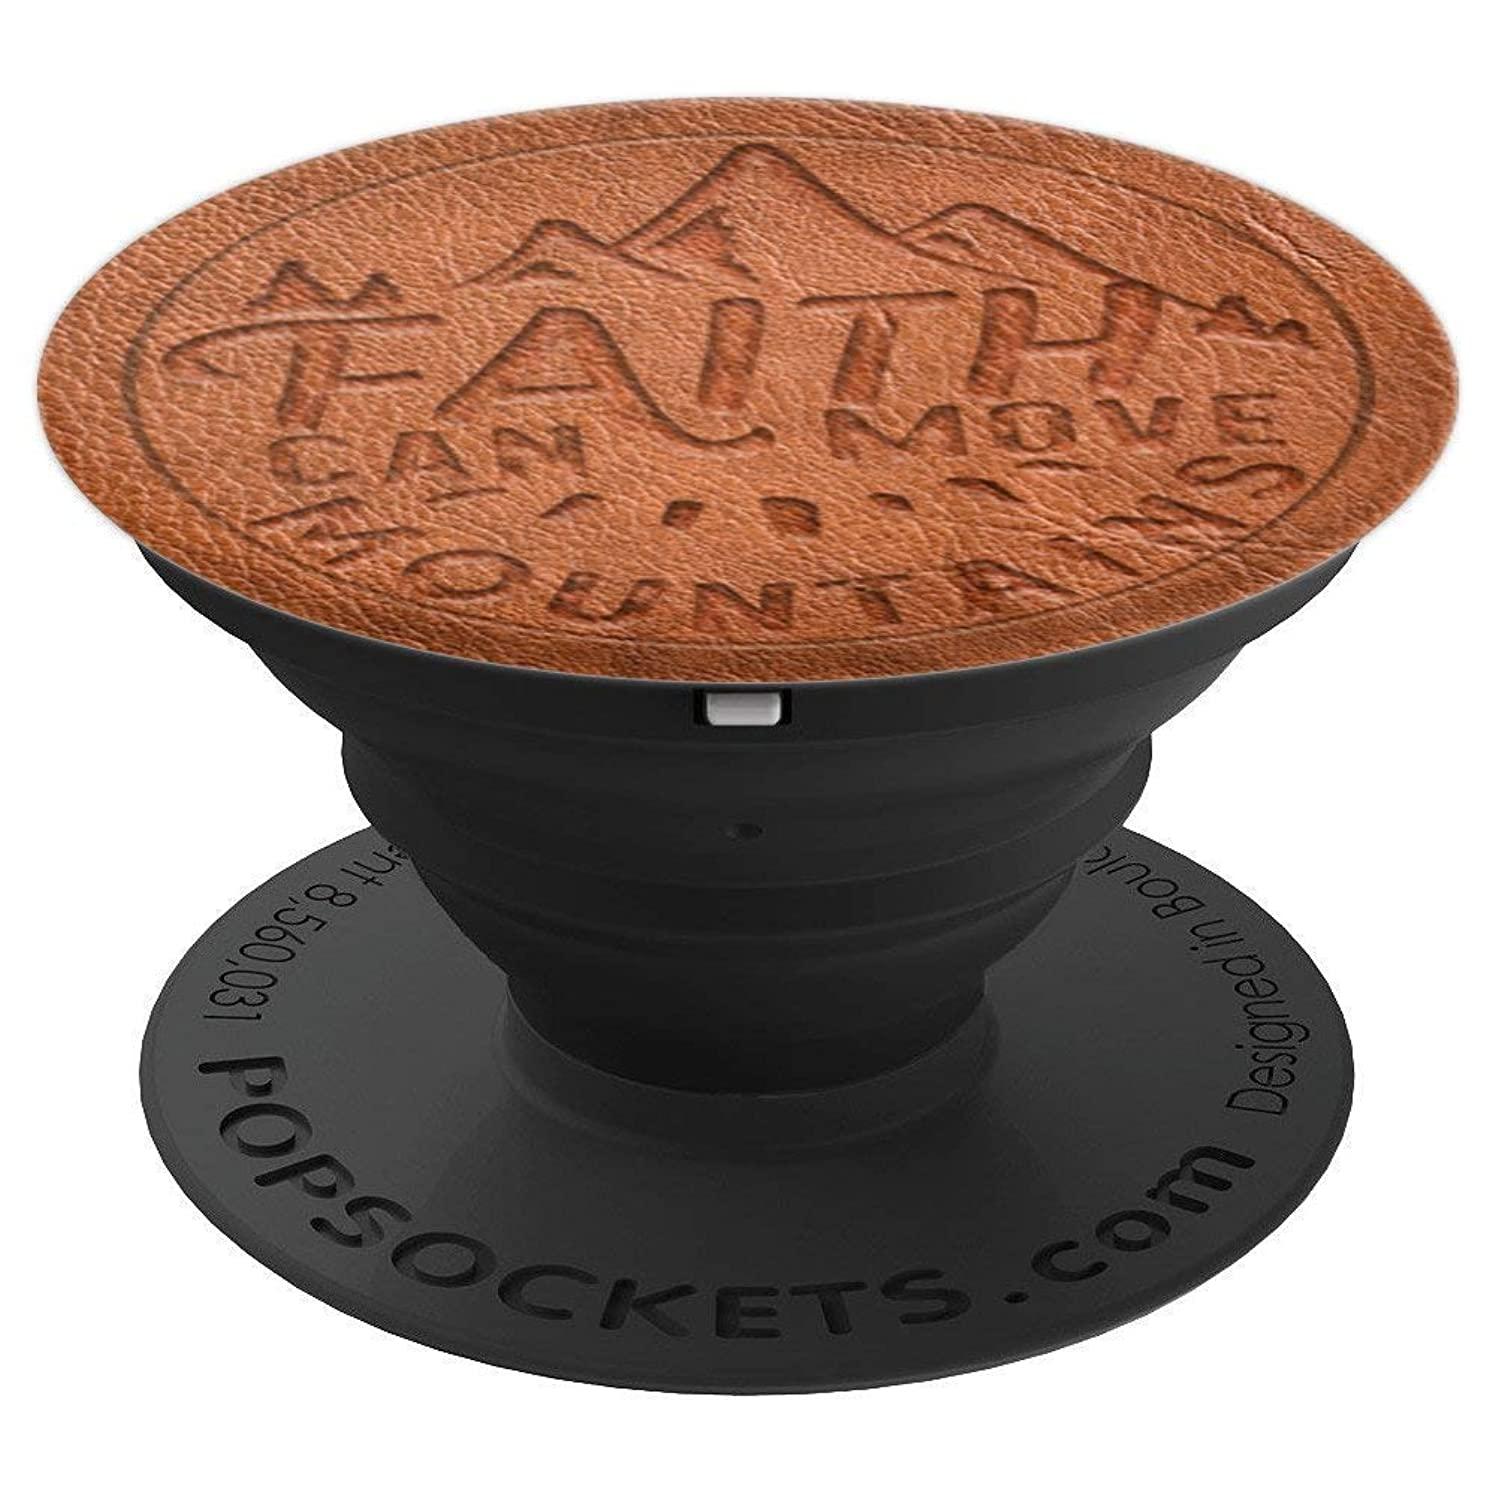 Faith Can Move Mountains Matthew 17:20 Christian Bible Verse - PopSockets Grip and Stand for Phones and Tablets